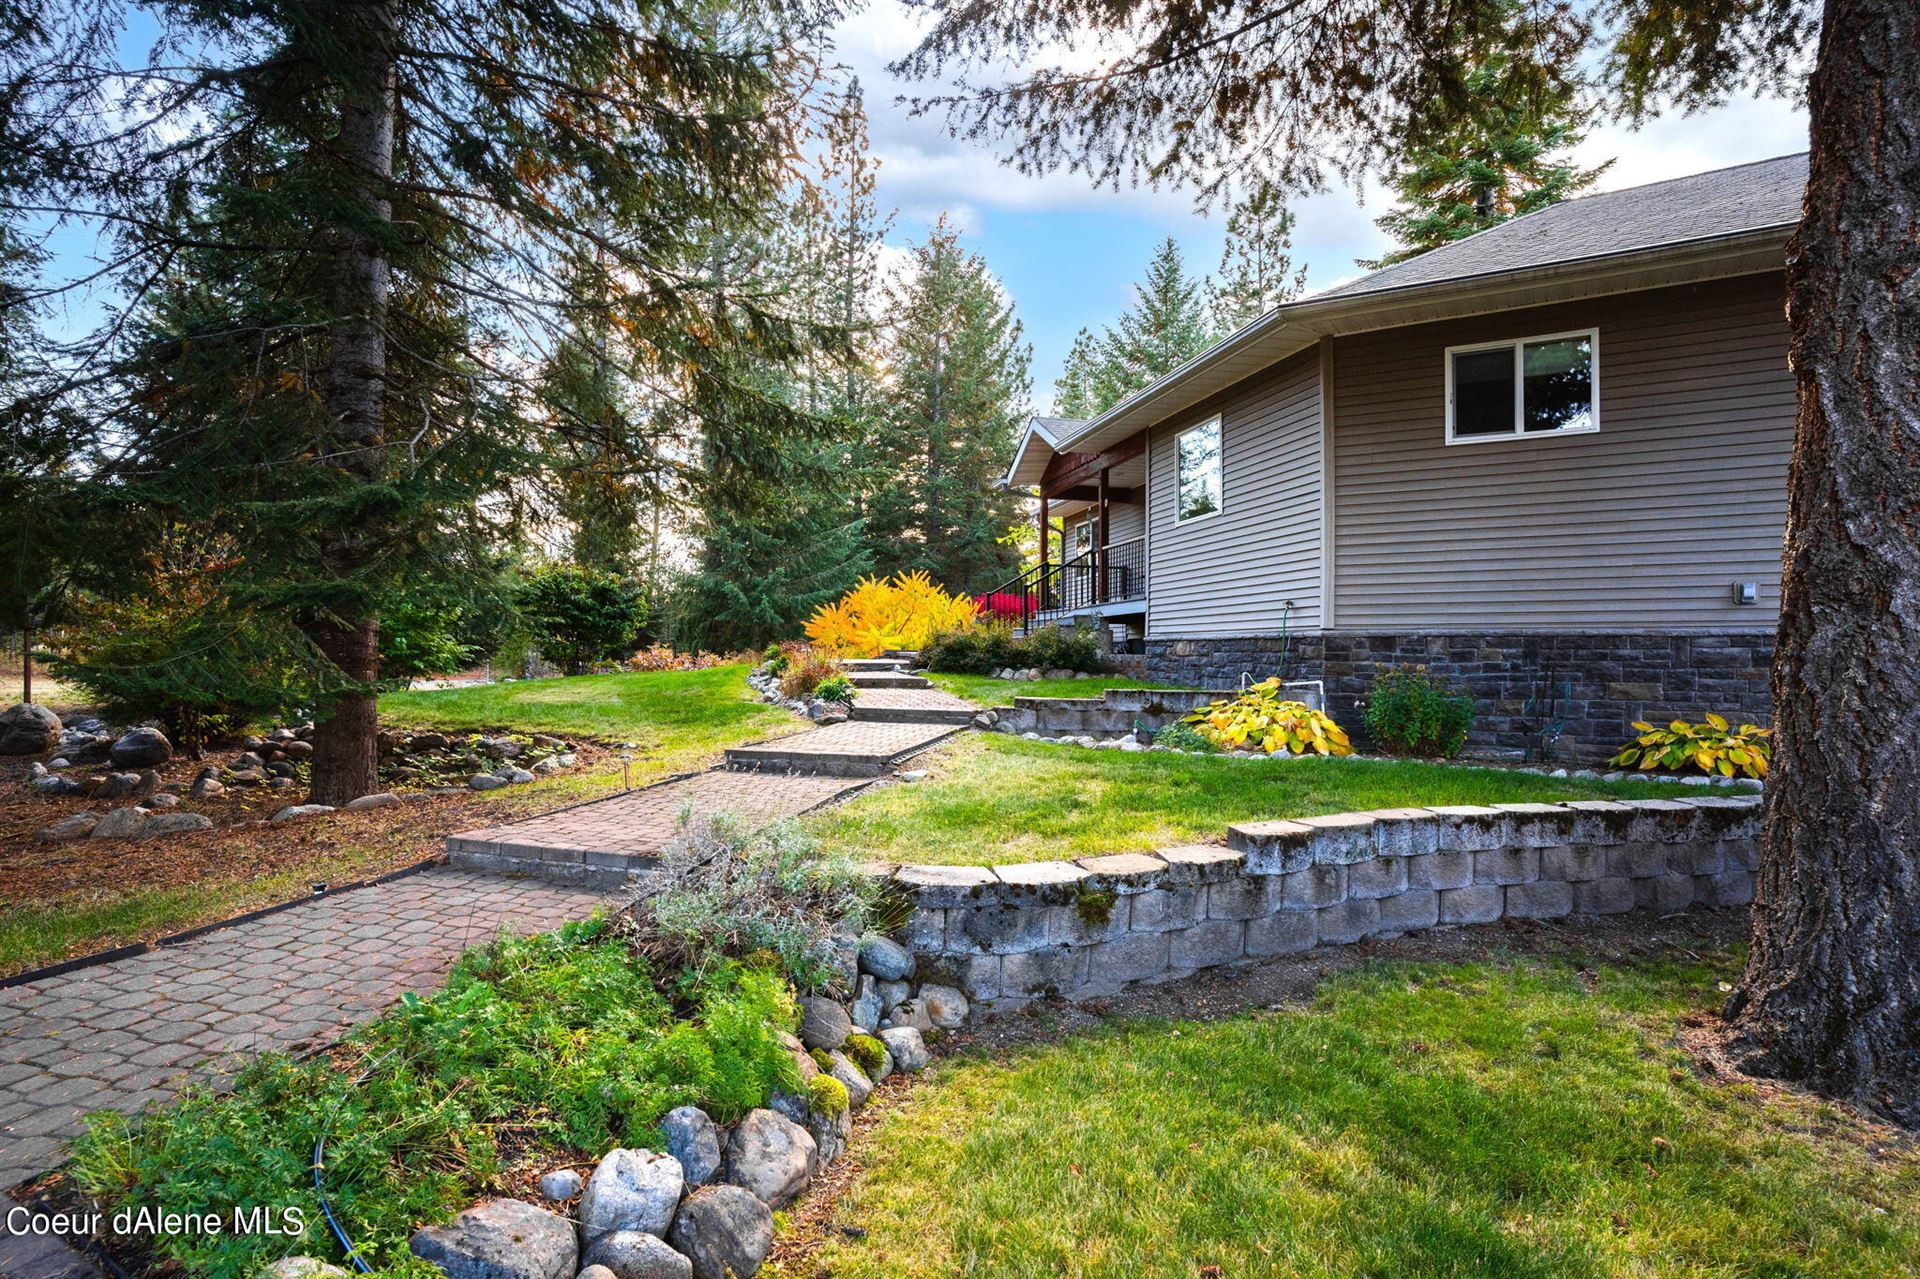 Photo of 21701 N RANCH VIEW DR, Rathdrum, ID 83858 (MLS # 21-10485)